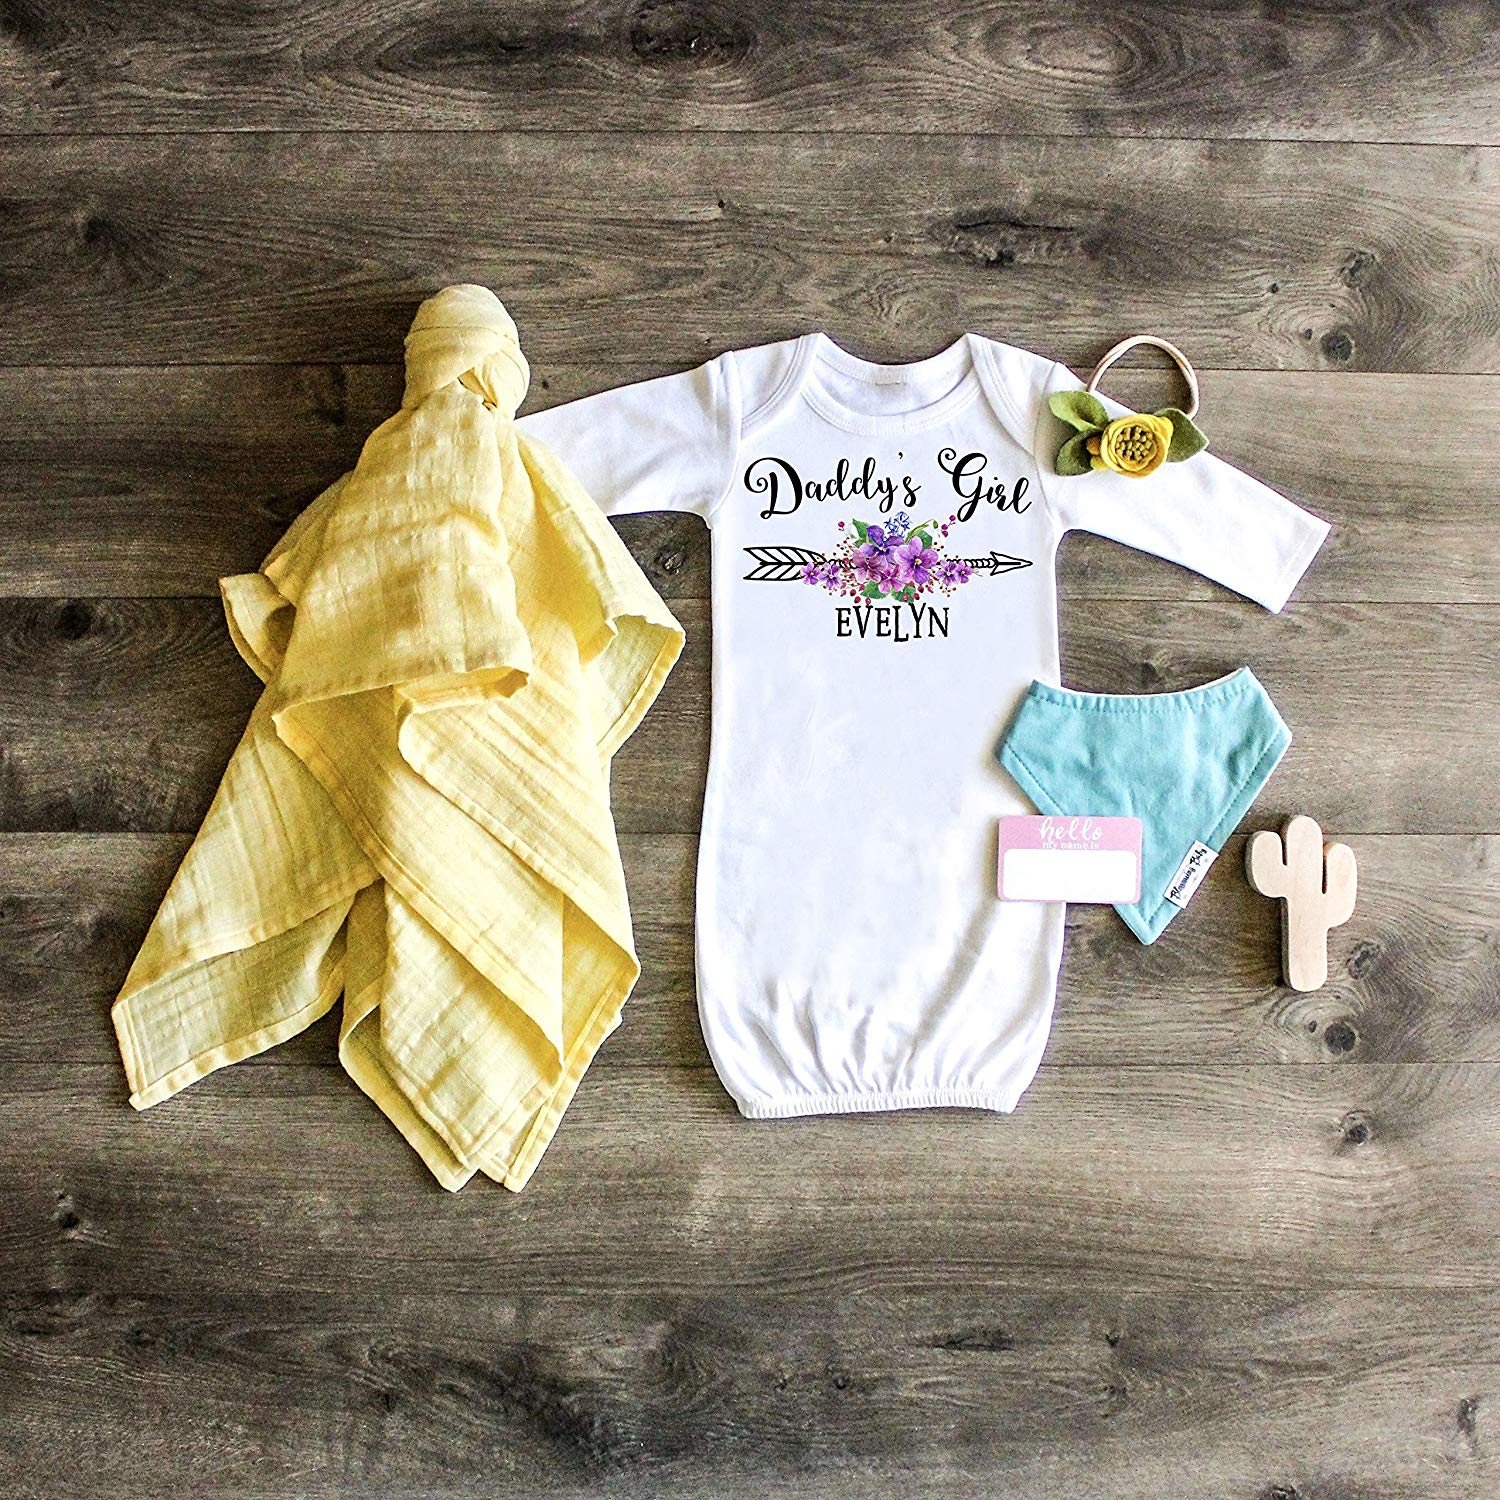 a18bdbea3d12 Get Quotations · Daddy s Girl Gown Personalized Gown Daddy s Girl Outfit  Personalized Gown Newborn Gown Newborn Outfit Take home